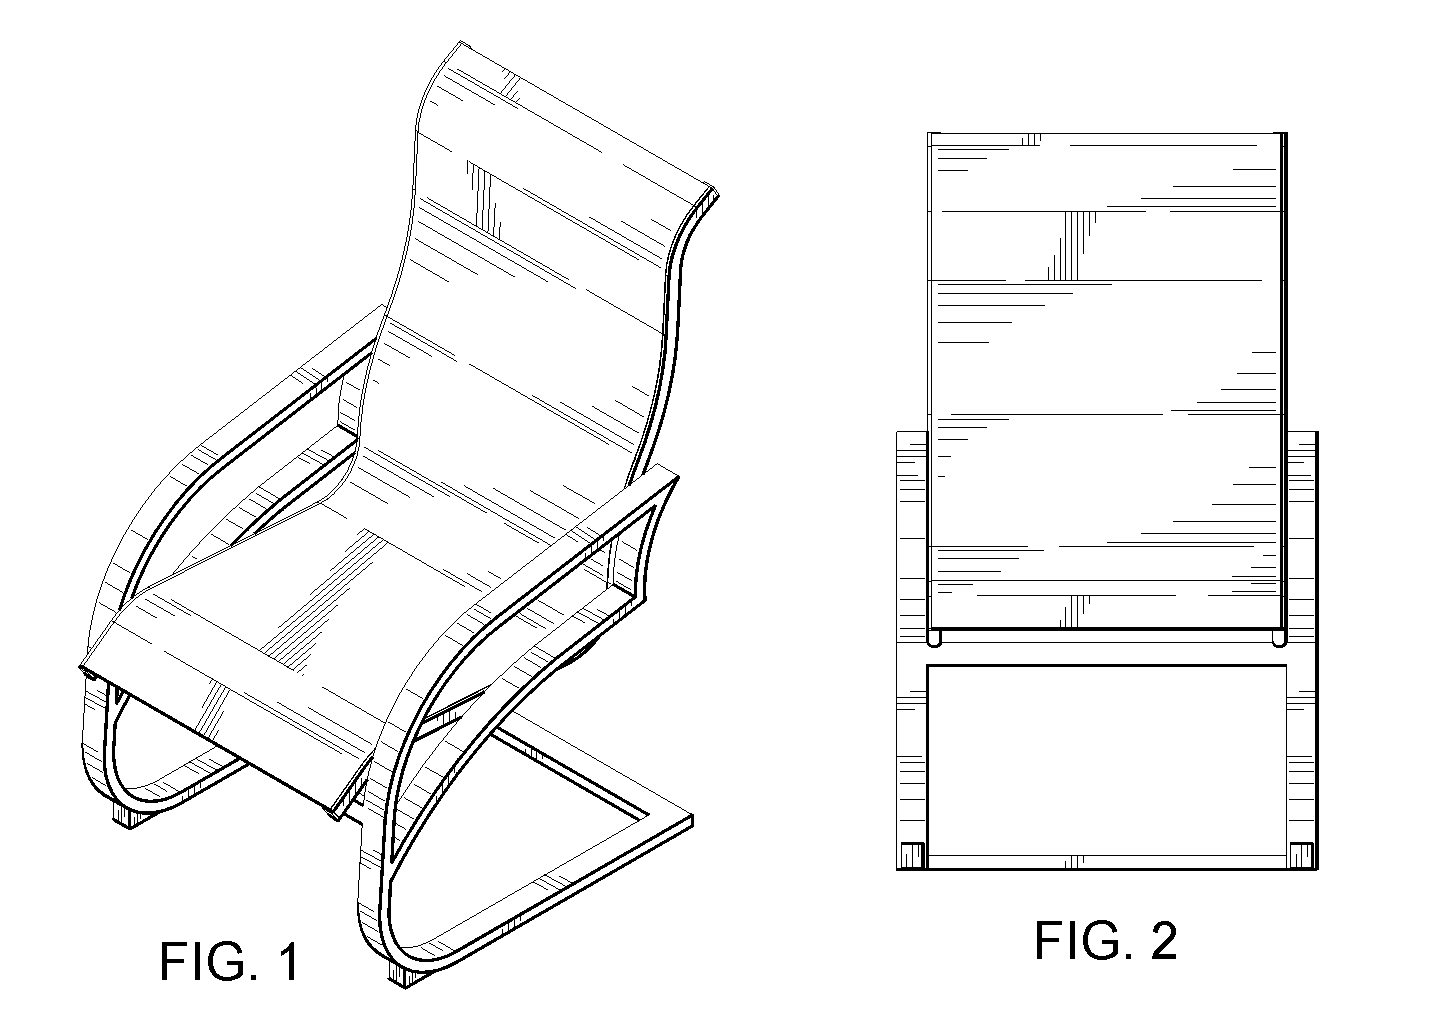 chair design patent relax the back zero gravity lounge nbg drafting and